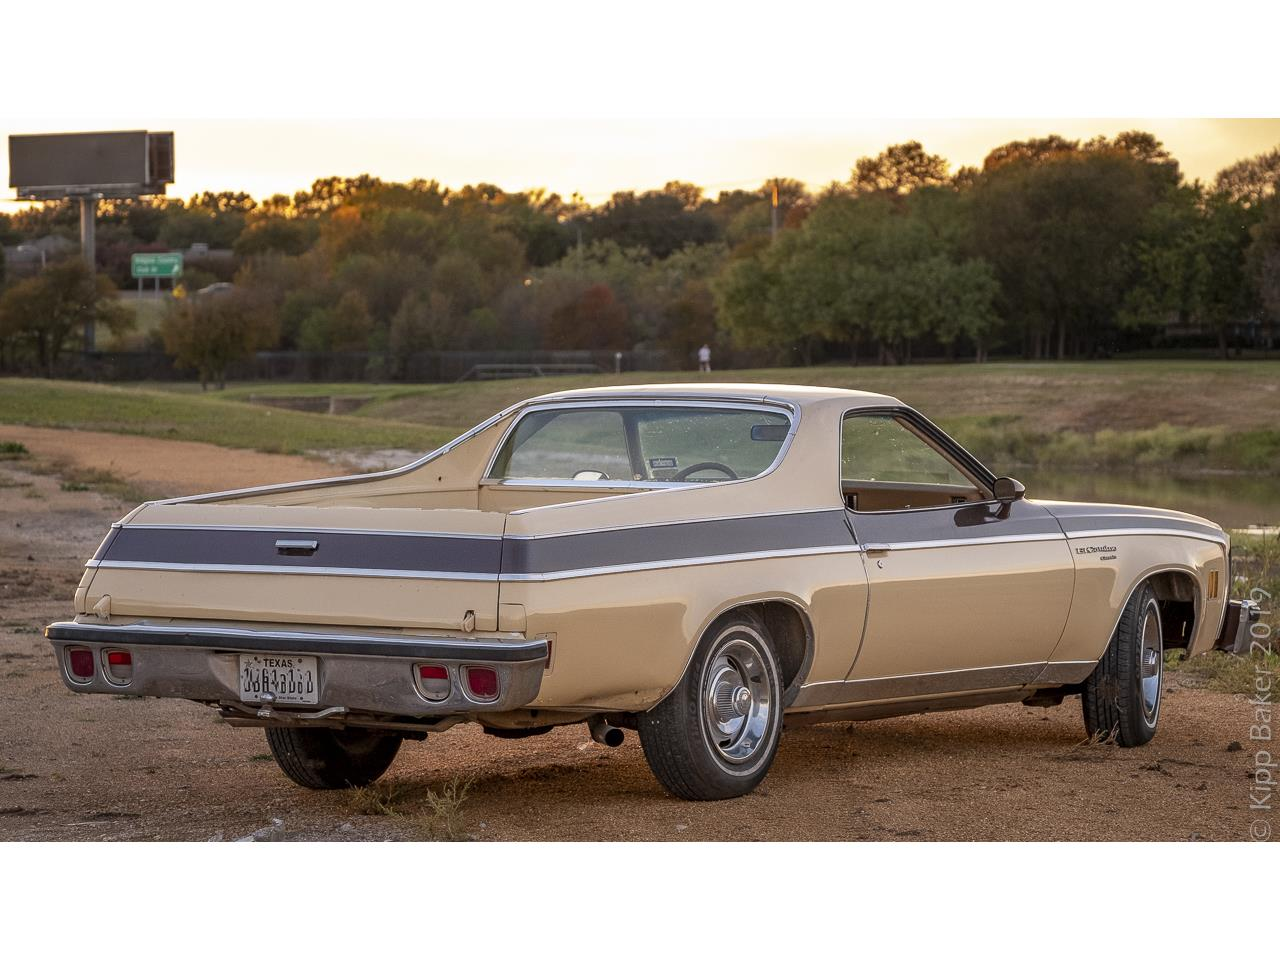 1976 Chevrolet El Camino (CC-1313614) for sale in Fort Worth, Texas